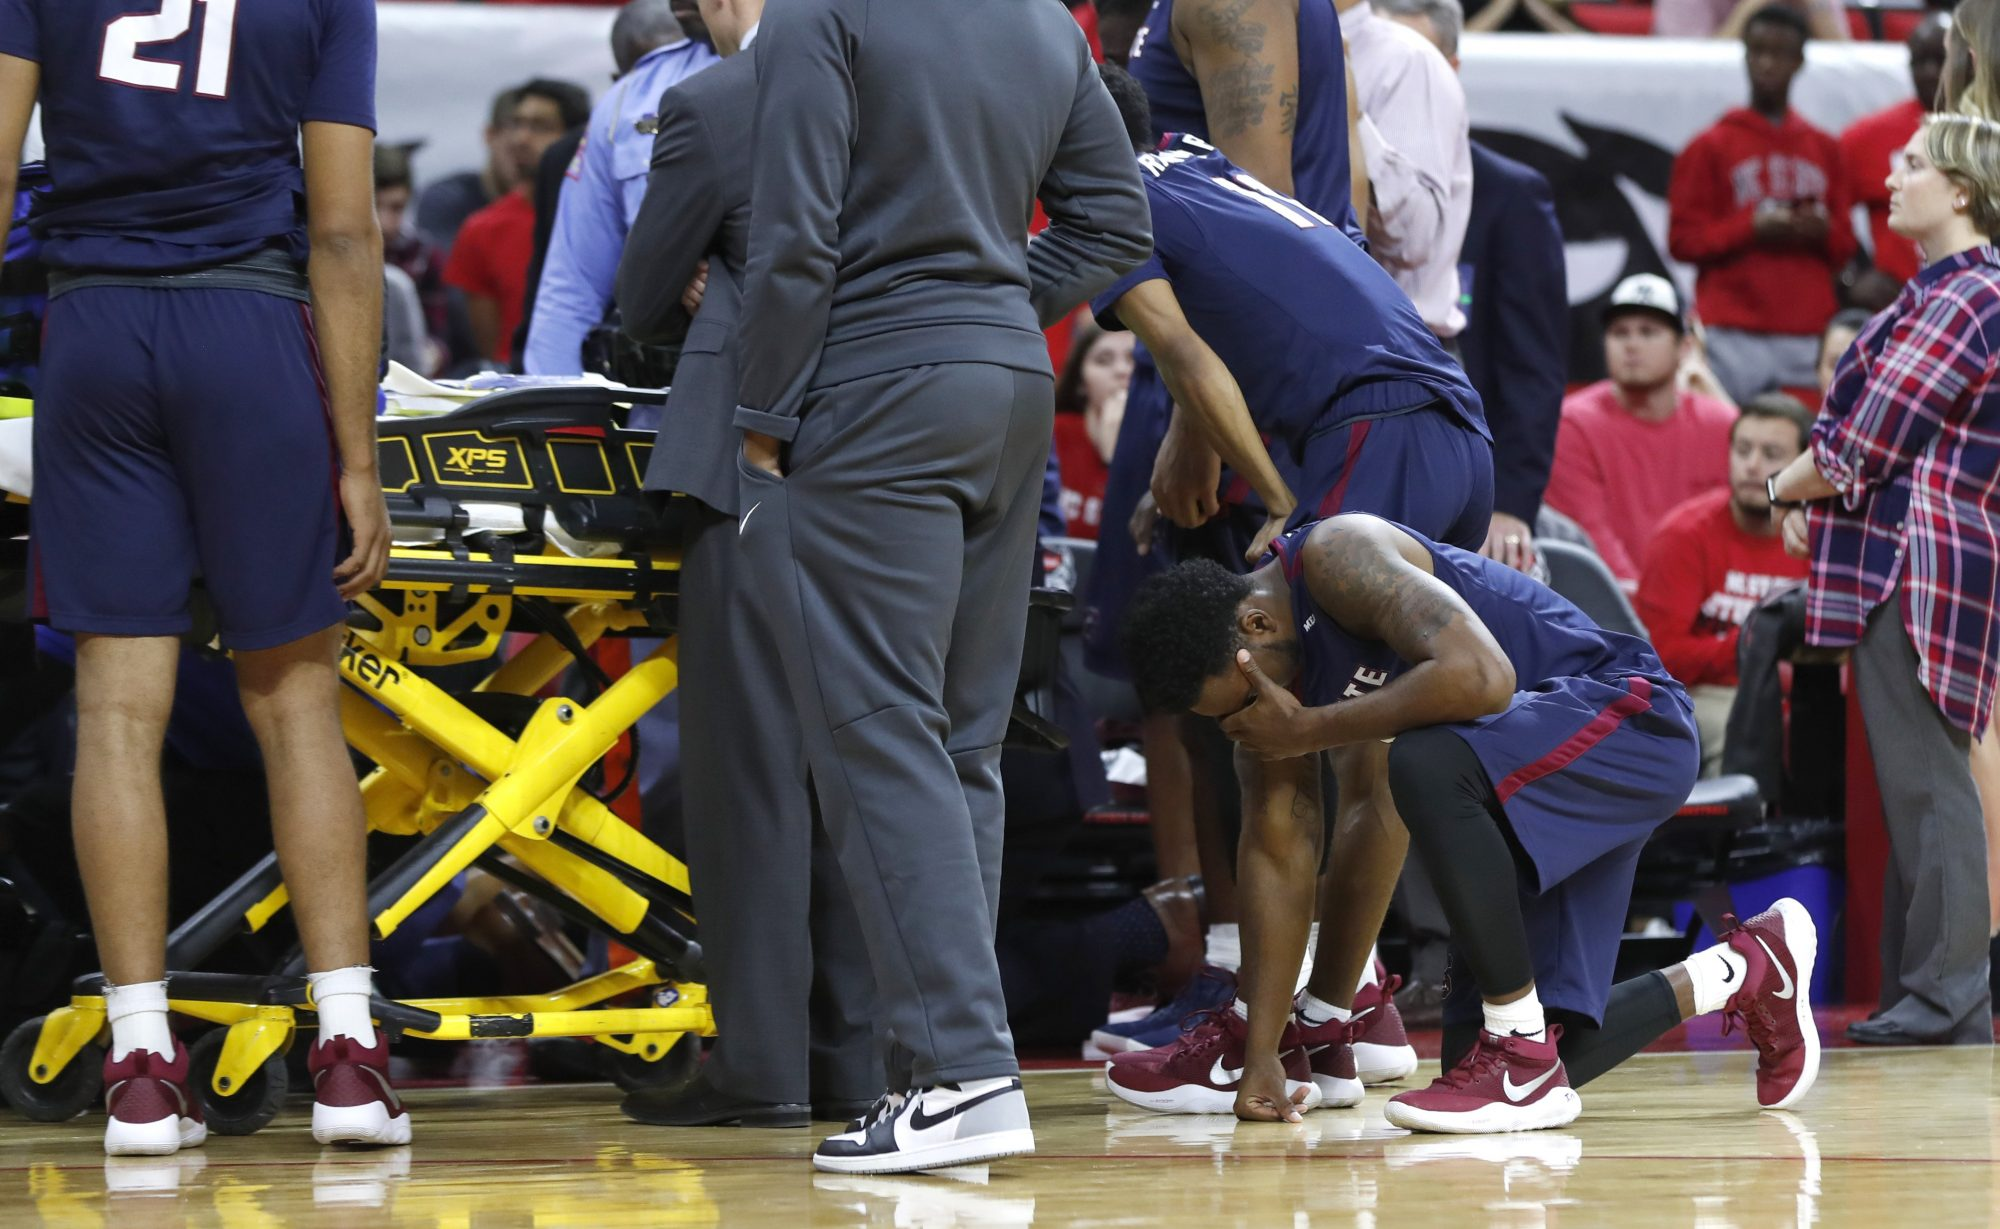 SC State Basketball Player collapses